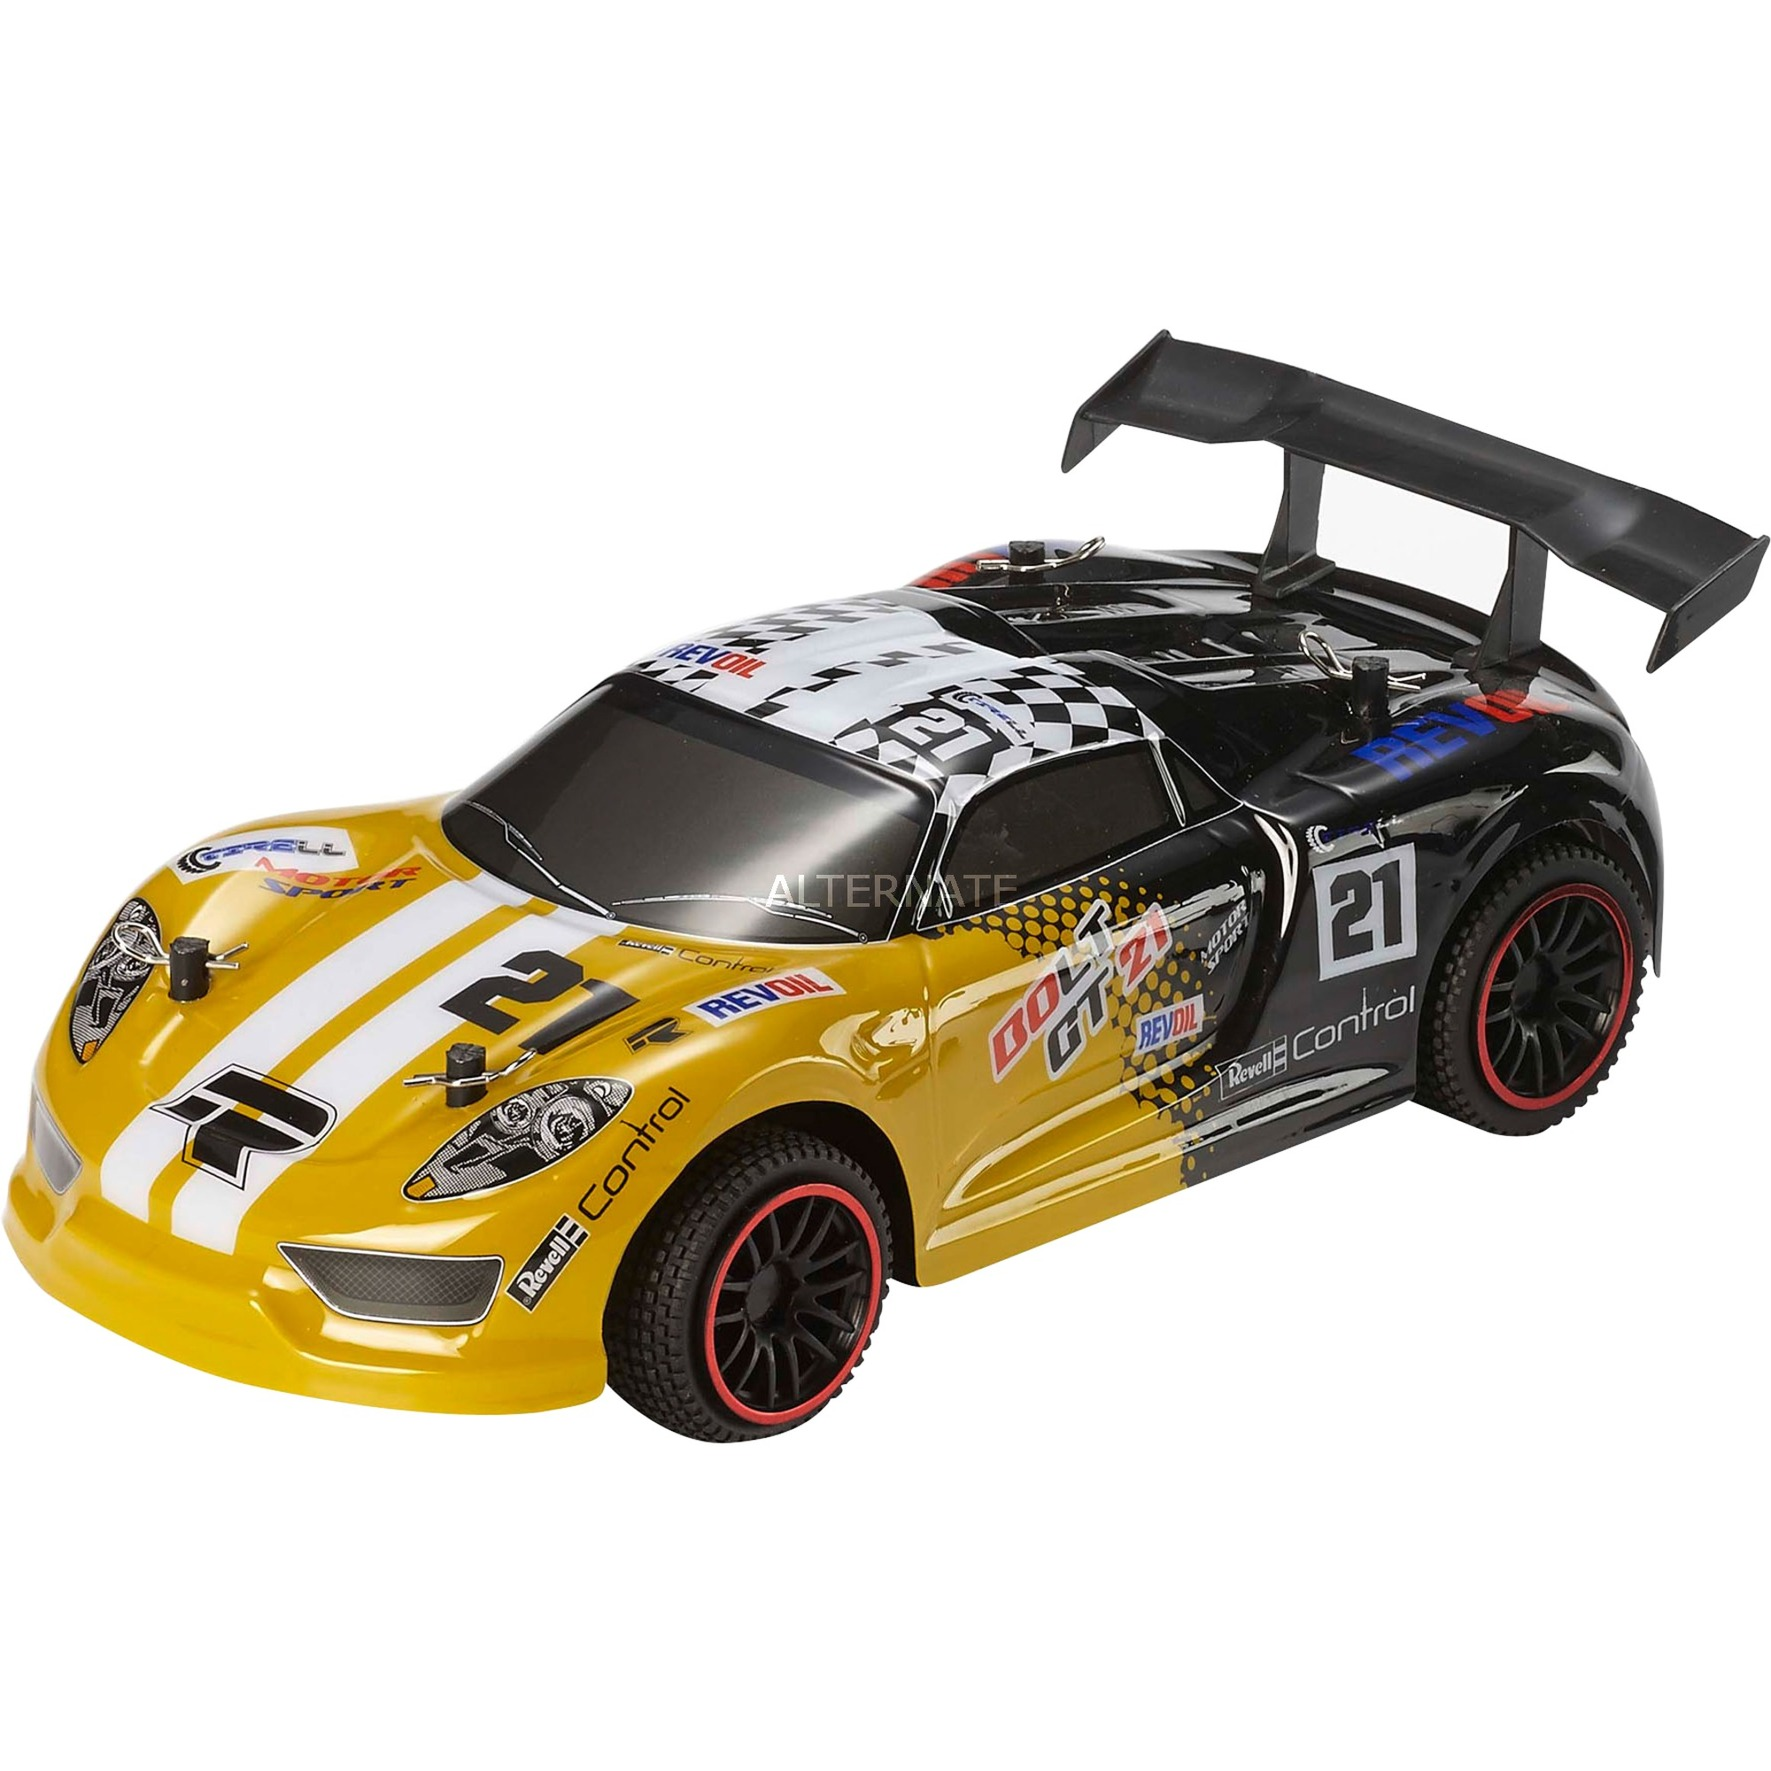 bolt-gt-21-remote-controlled-car-rc